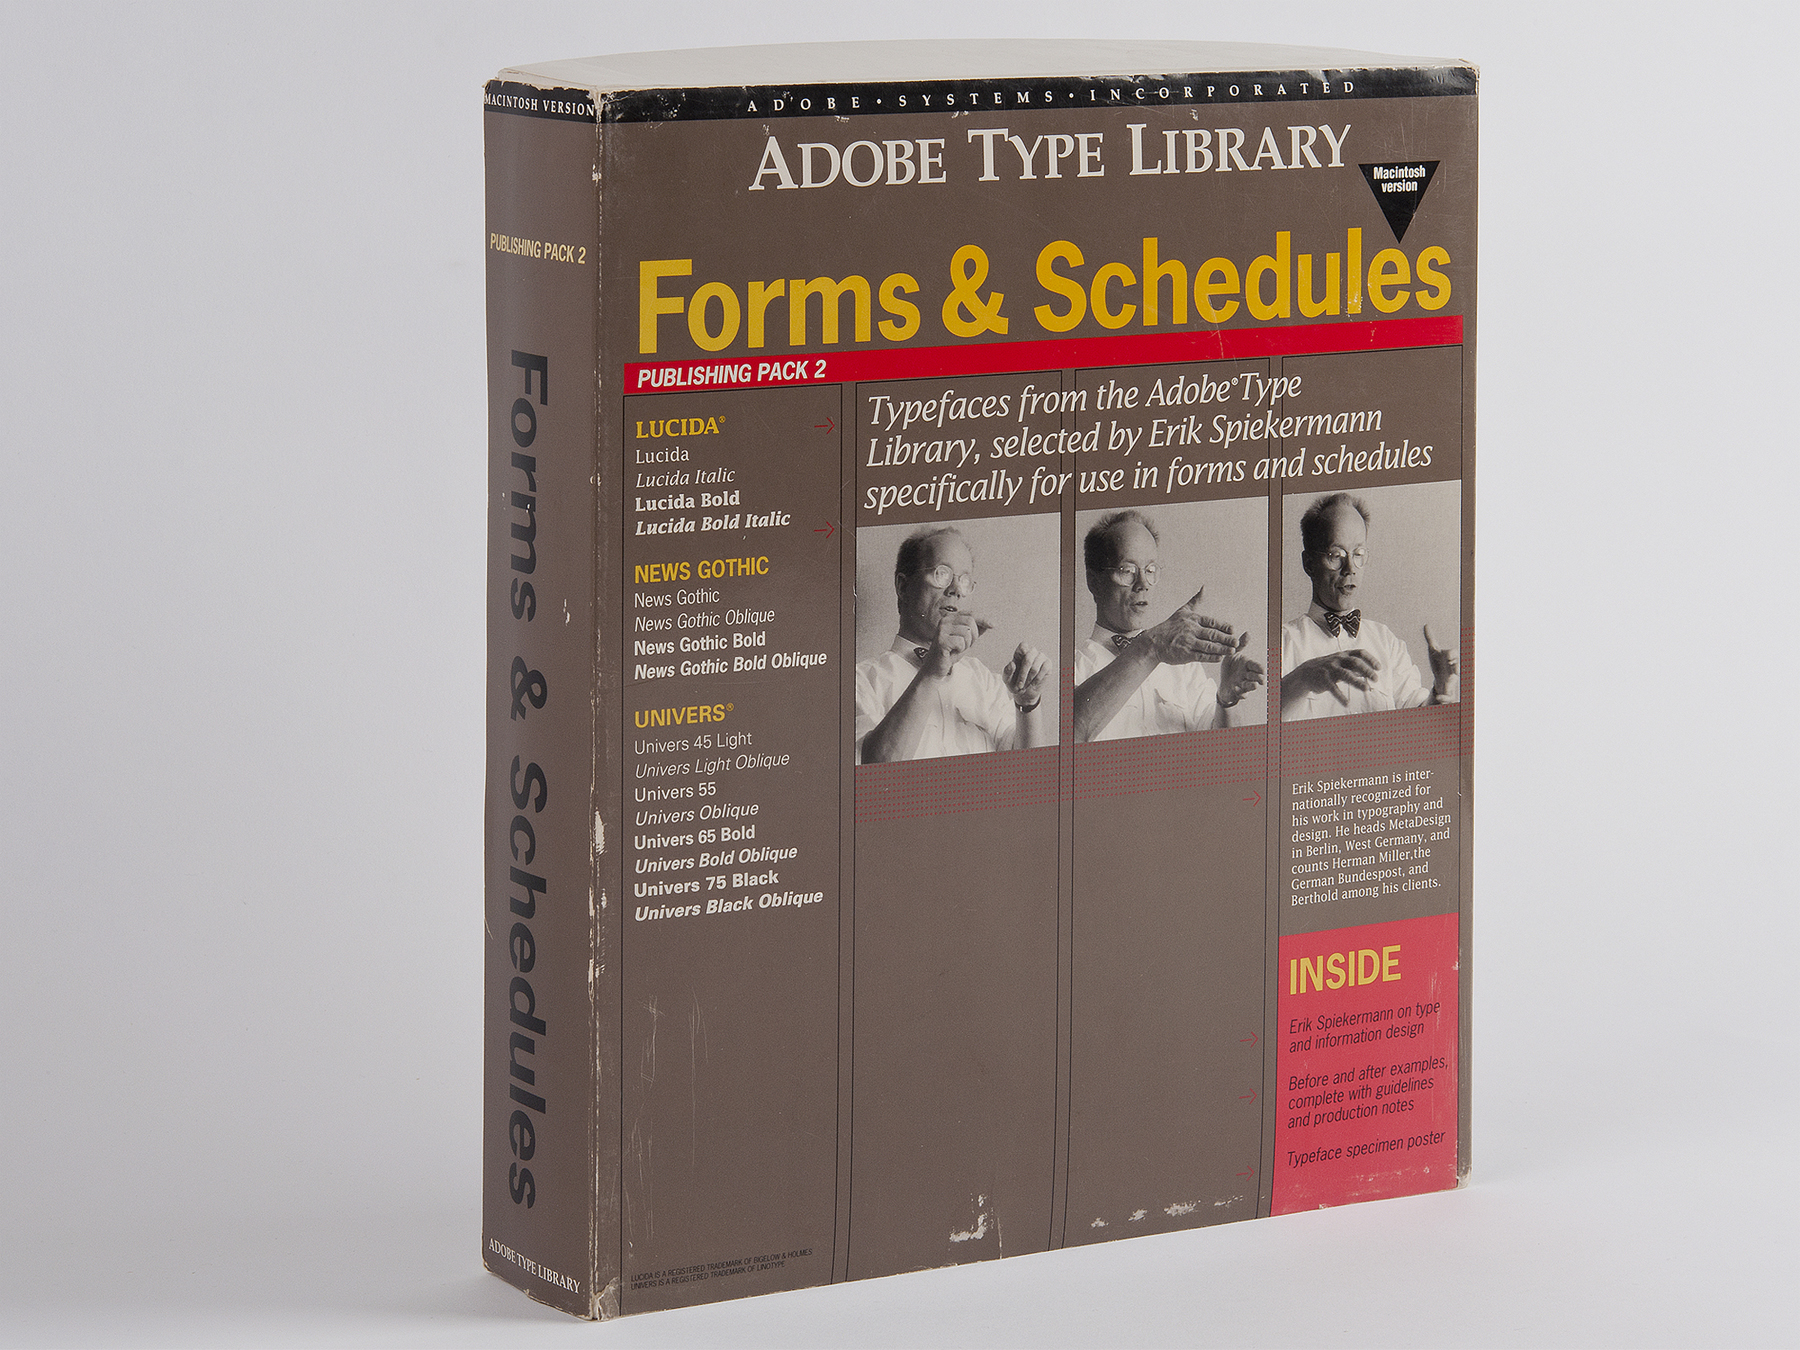 Adobe Publishing Pack curated by Spiekermann, circa 1988.